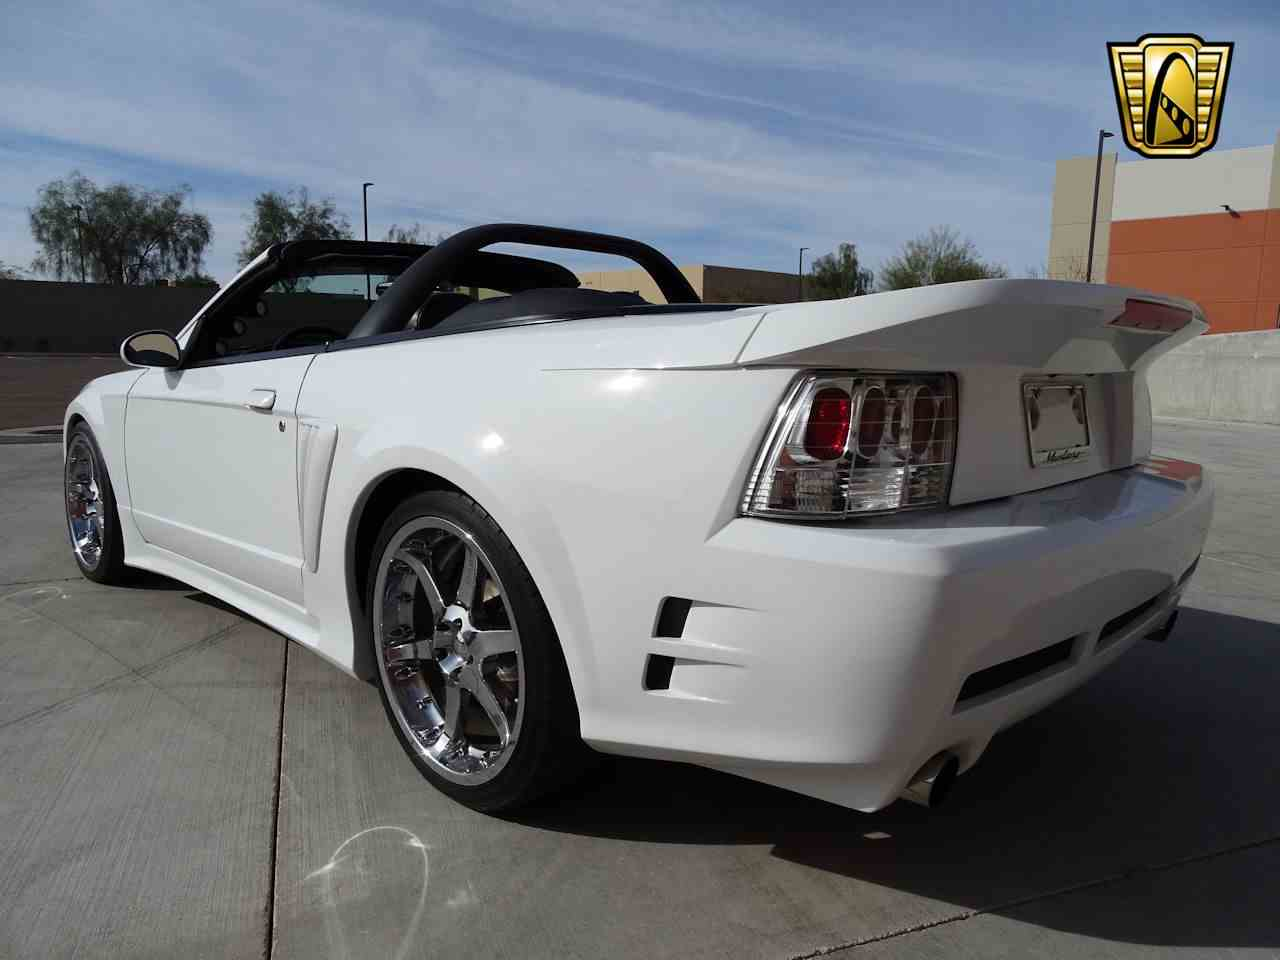 Large Picture of 2002 Ford Mustang located in Deer Valley Arizona - MZG0